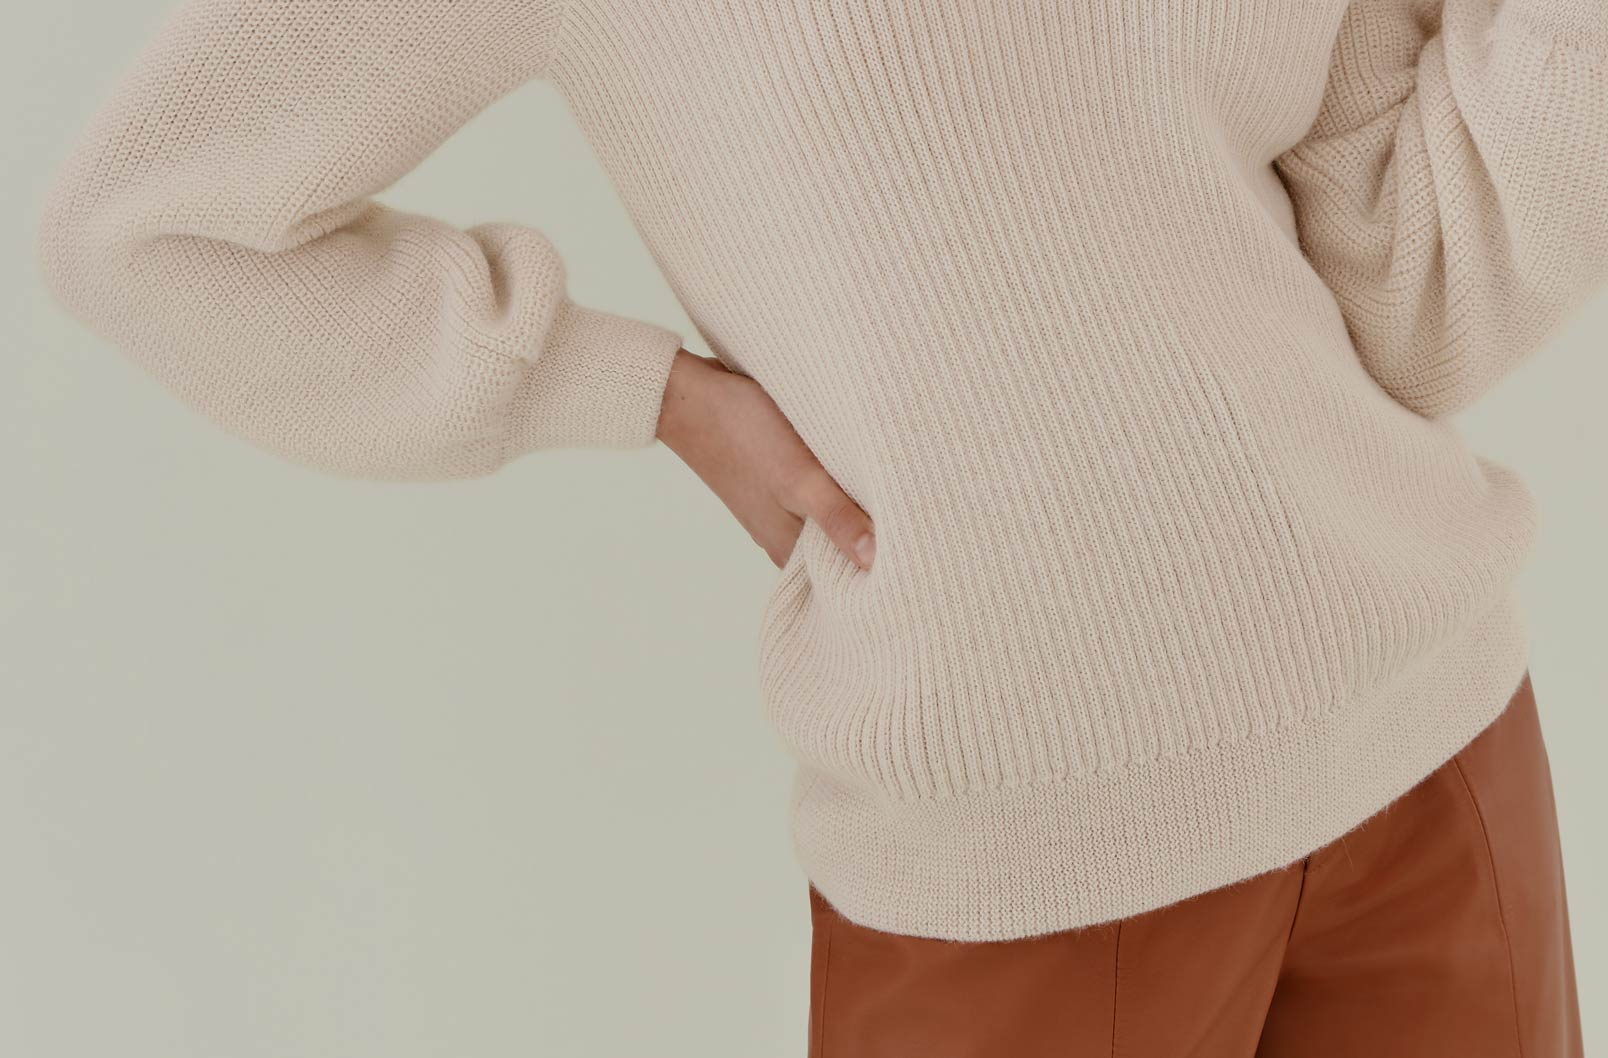 Image showing balloon sleeve of Alpaca Off-the-Shoulder Sweater